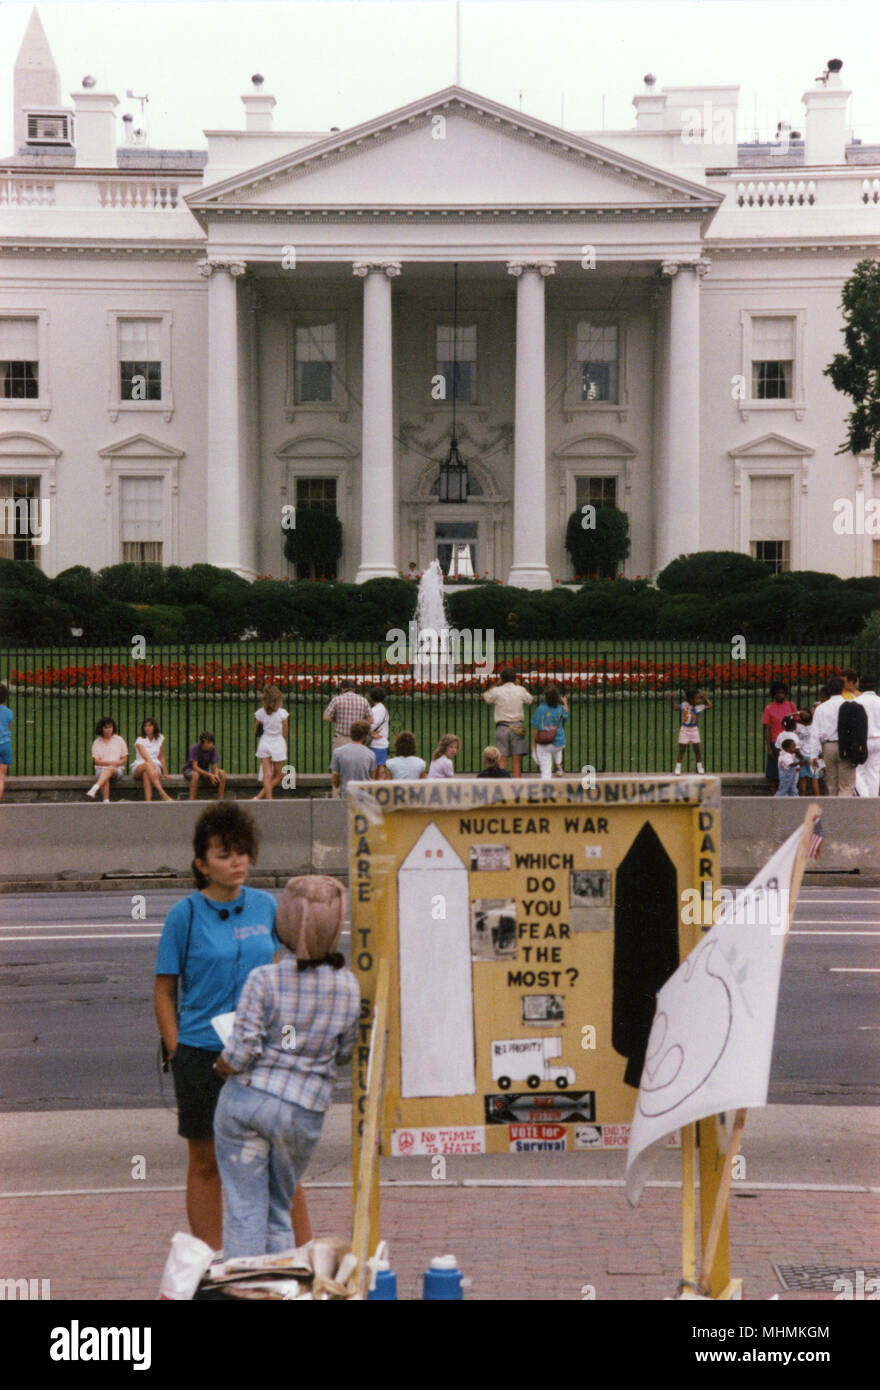 An anti-nuclear demonstrator pitches a stall directly opposite the White House in Washington DC, during the presidency of Ronald Reagan.      Date: 1987 - Stock Image